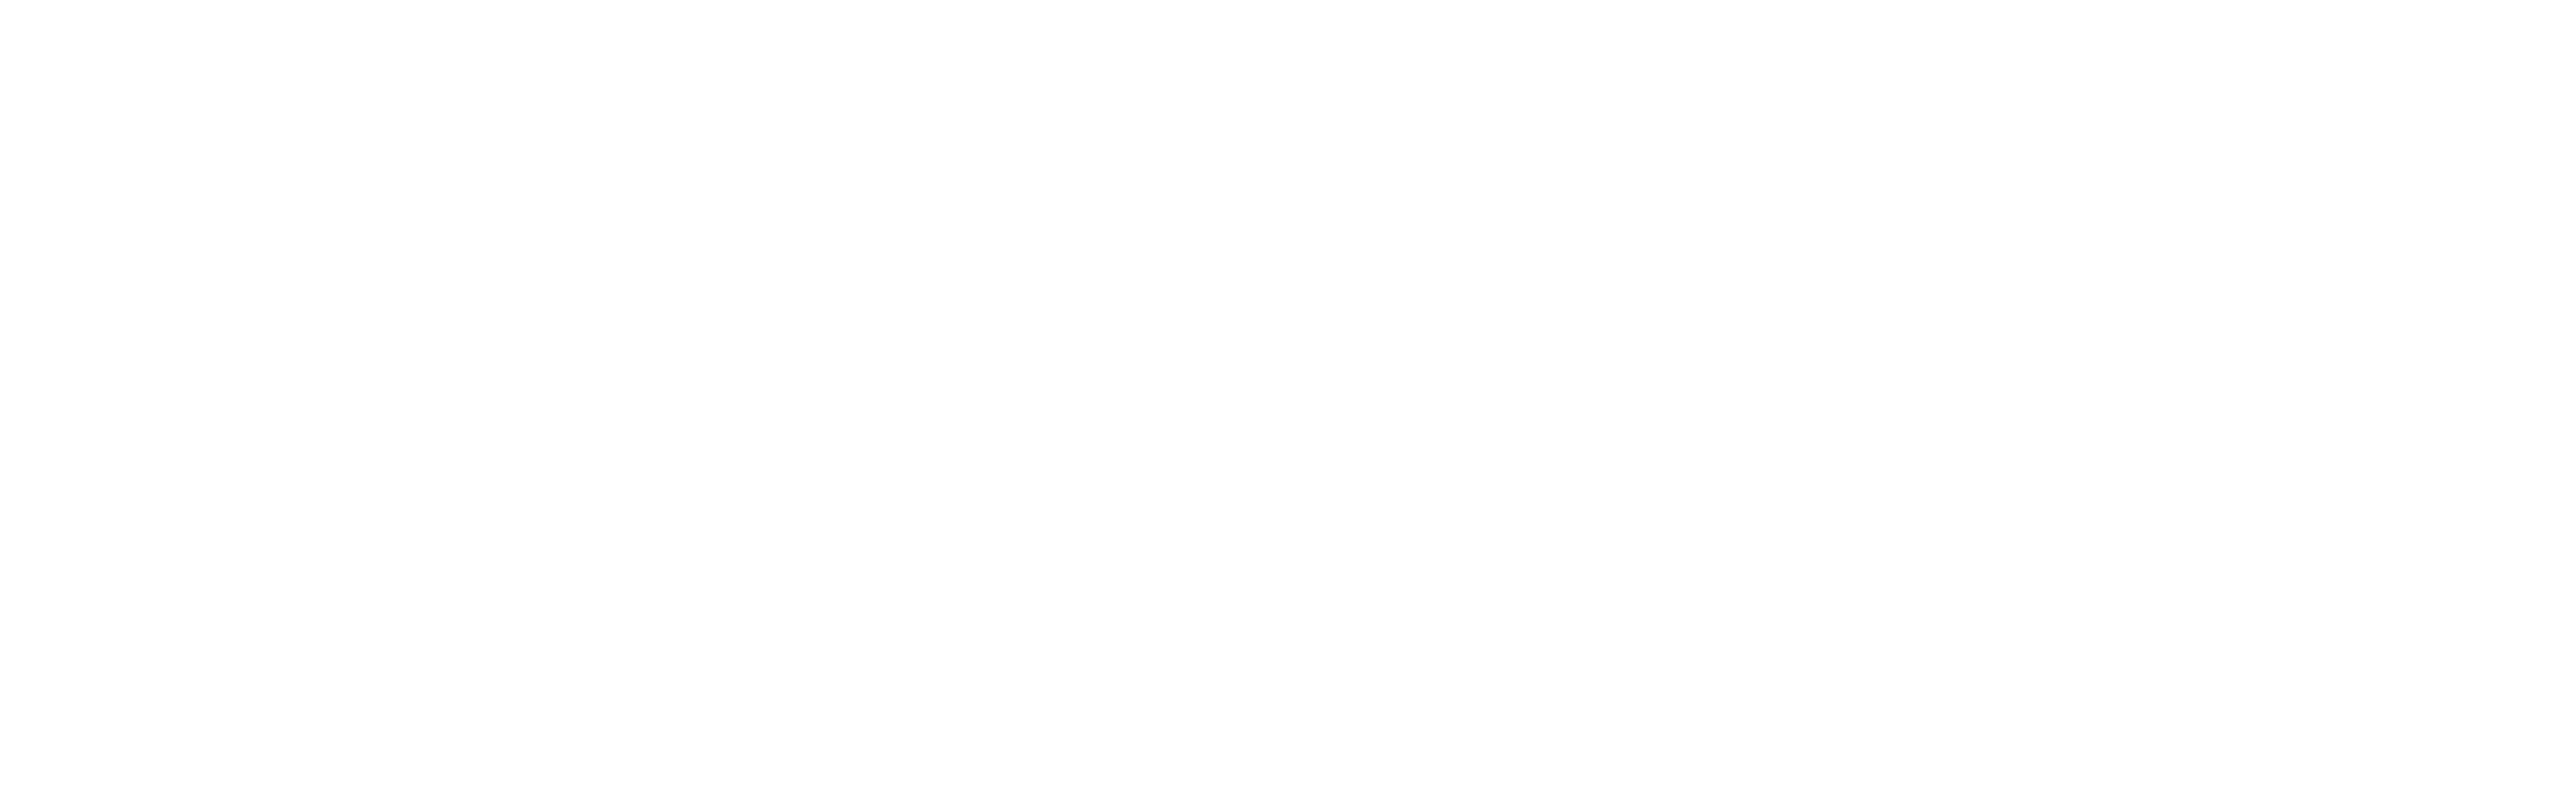 Quick Silver synthetic roof underlayment logo